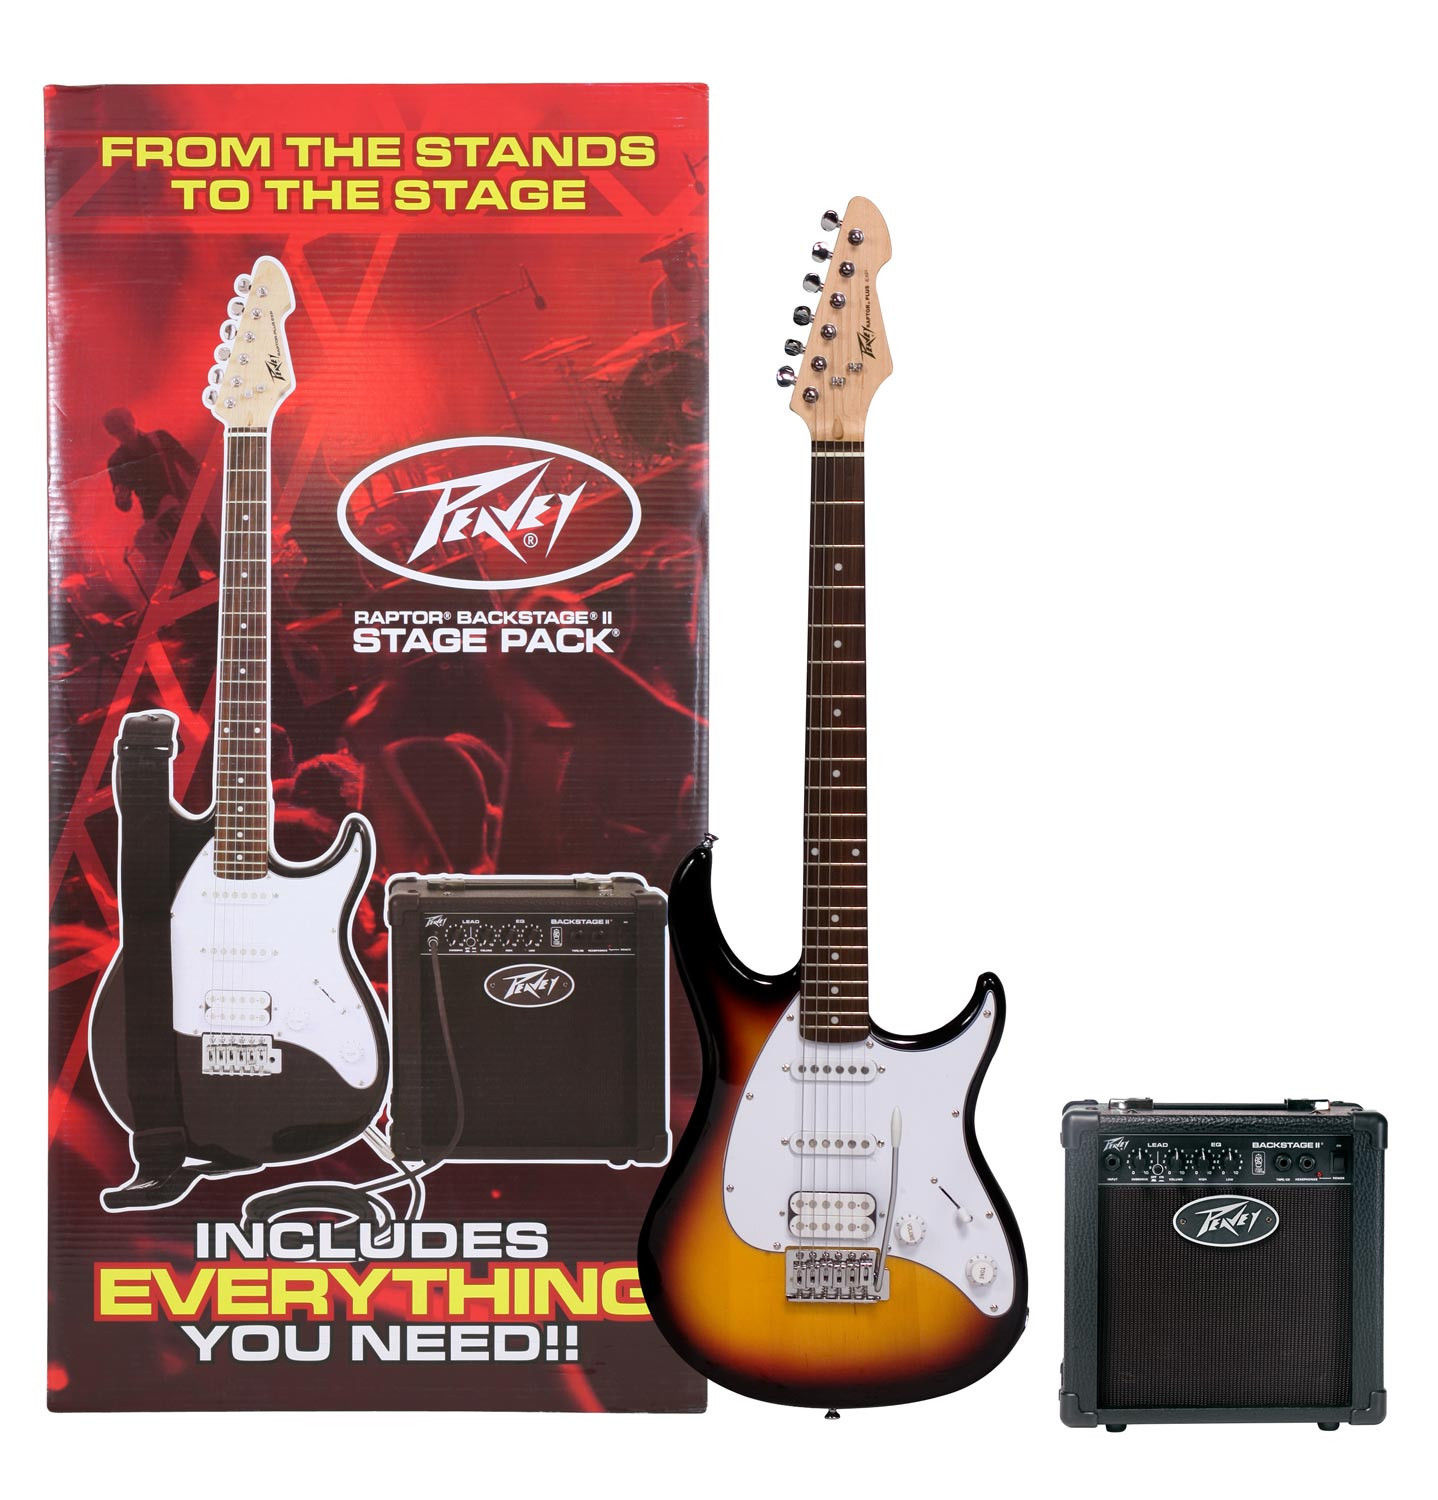 PEAVEY Stage Pack